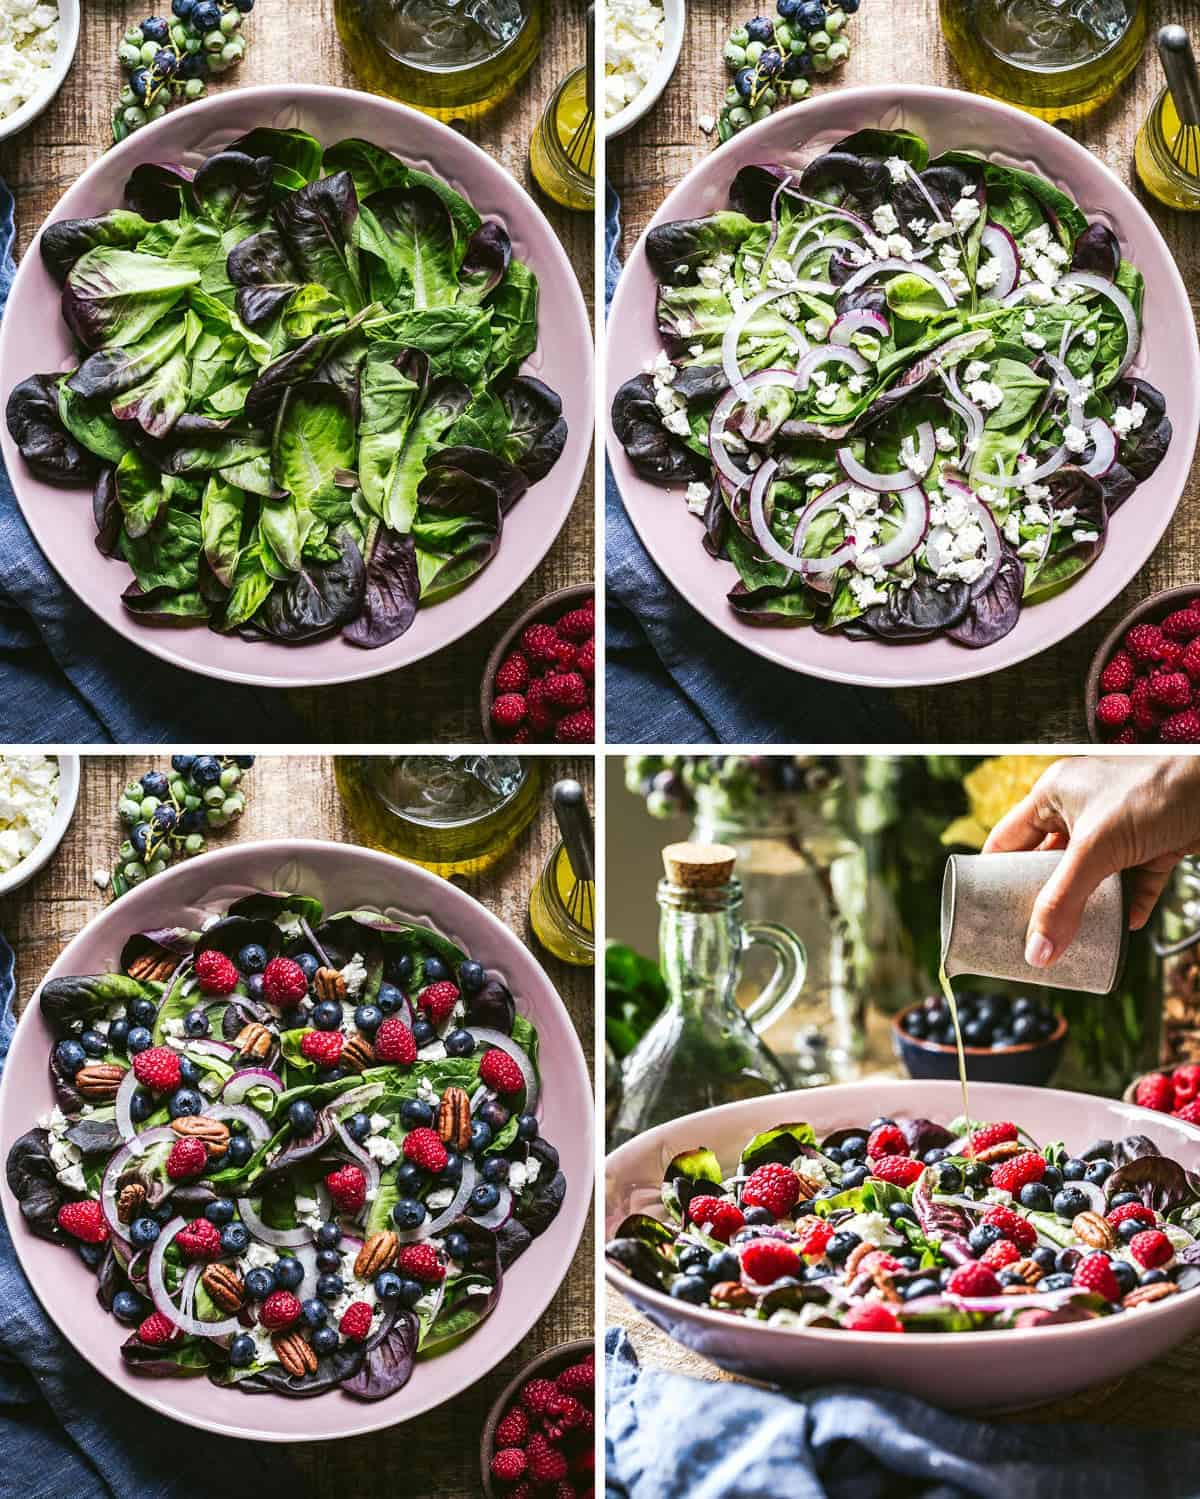 four images showing how to make blueberry salad in stages